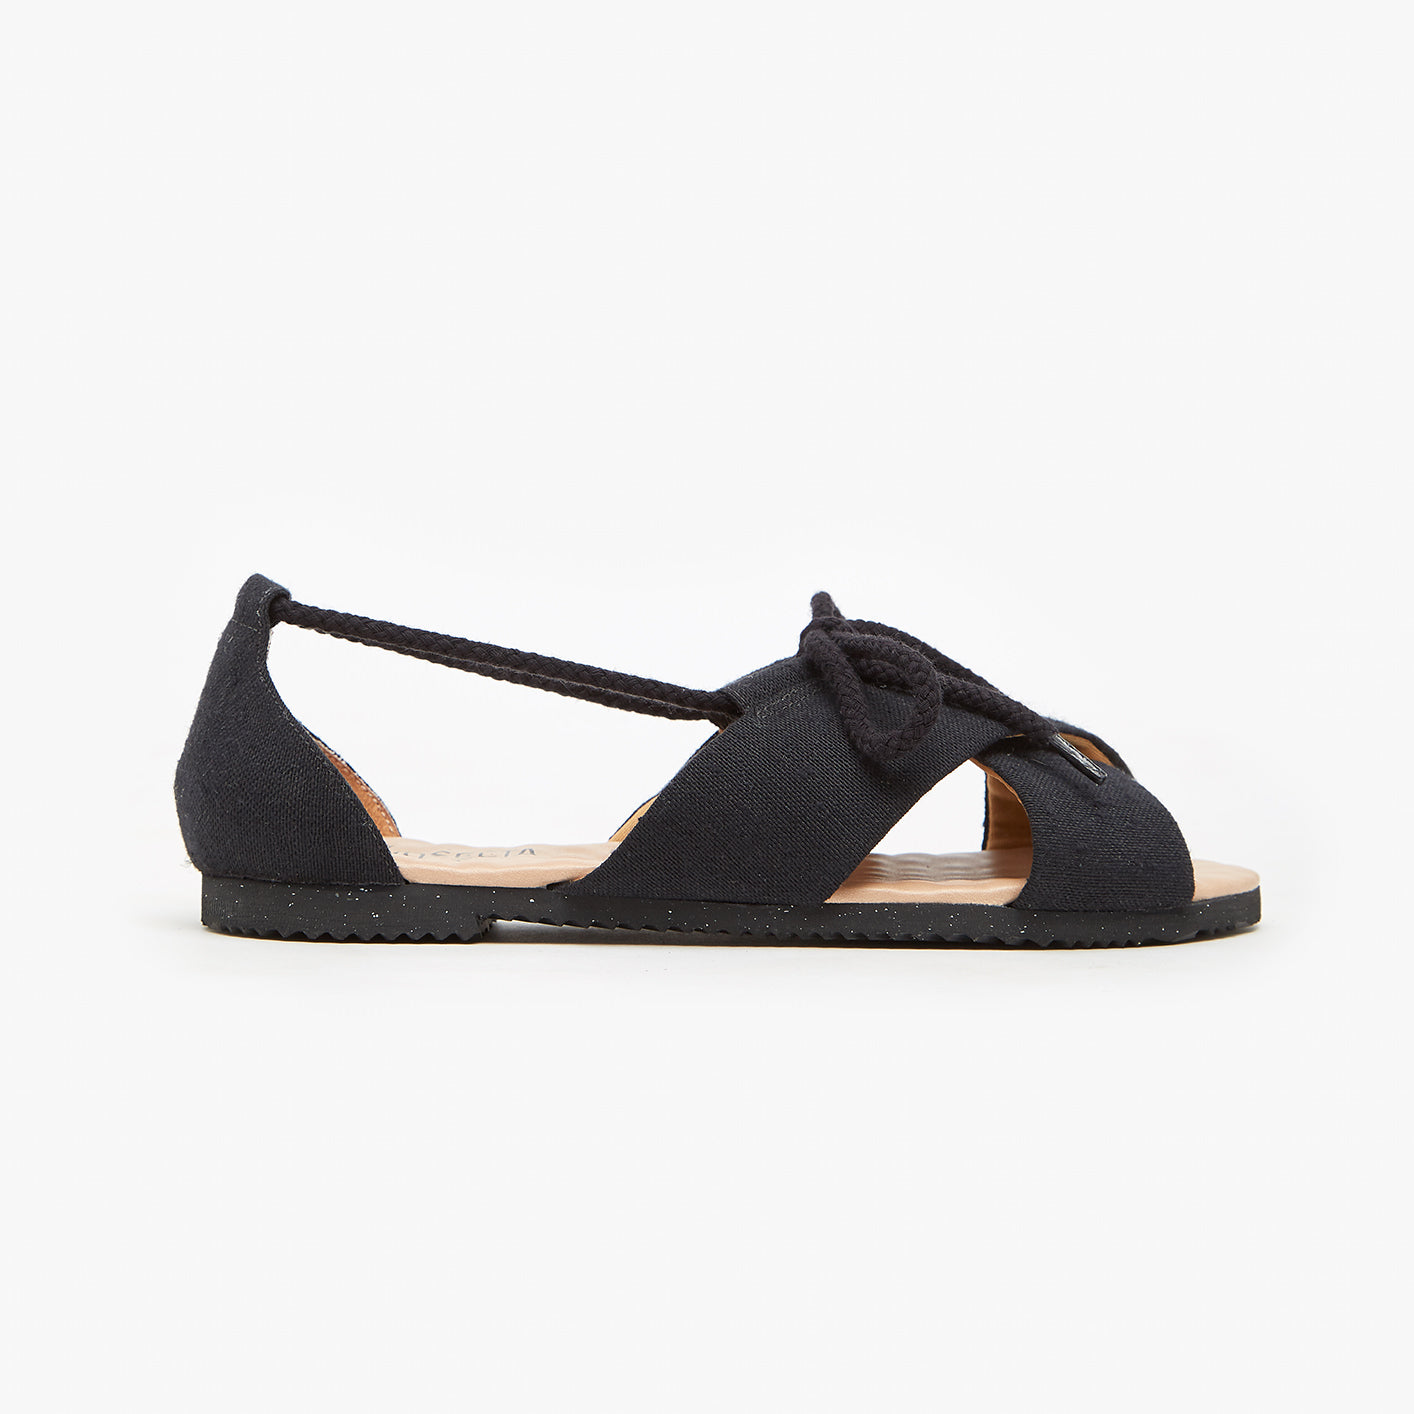 MONO BLACK SANDAL - Insecta Shoes Brasil